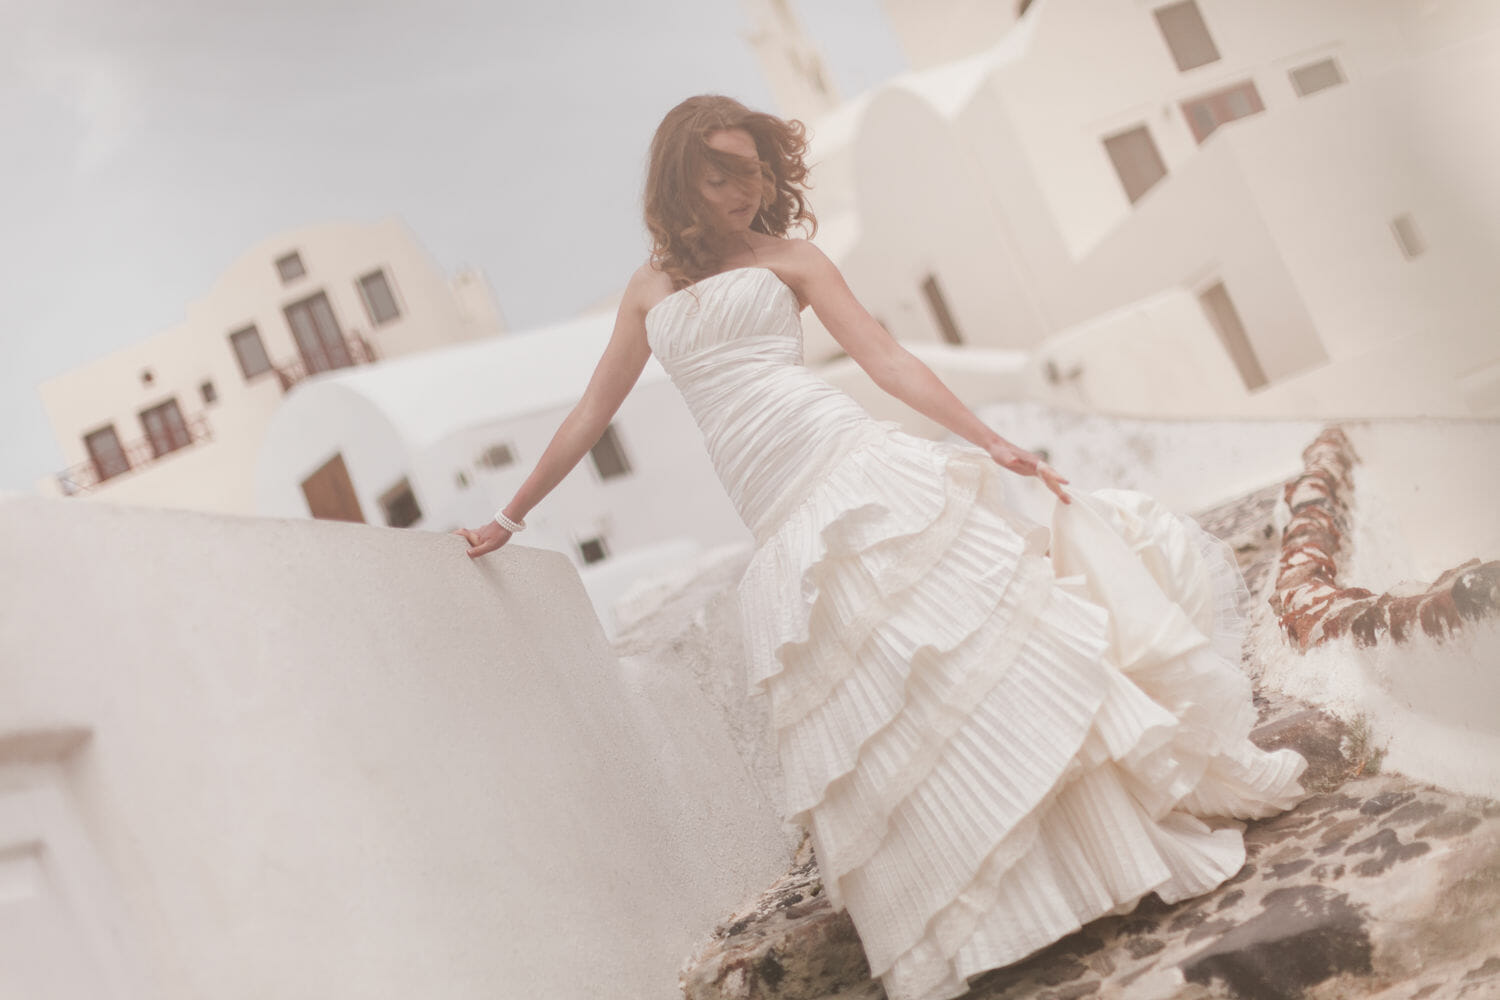 wedding-santorini-greece-anna-andreas-115